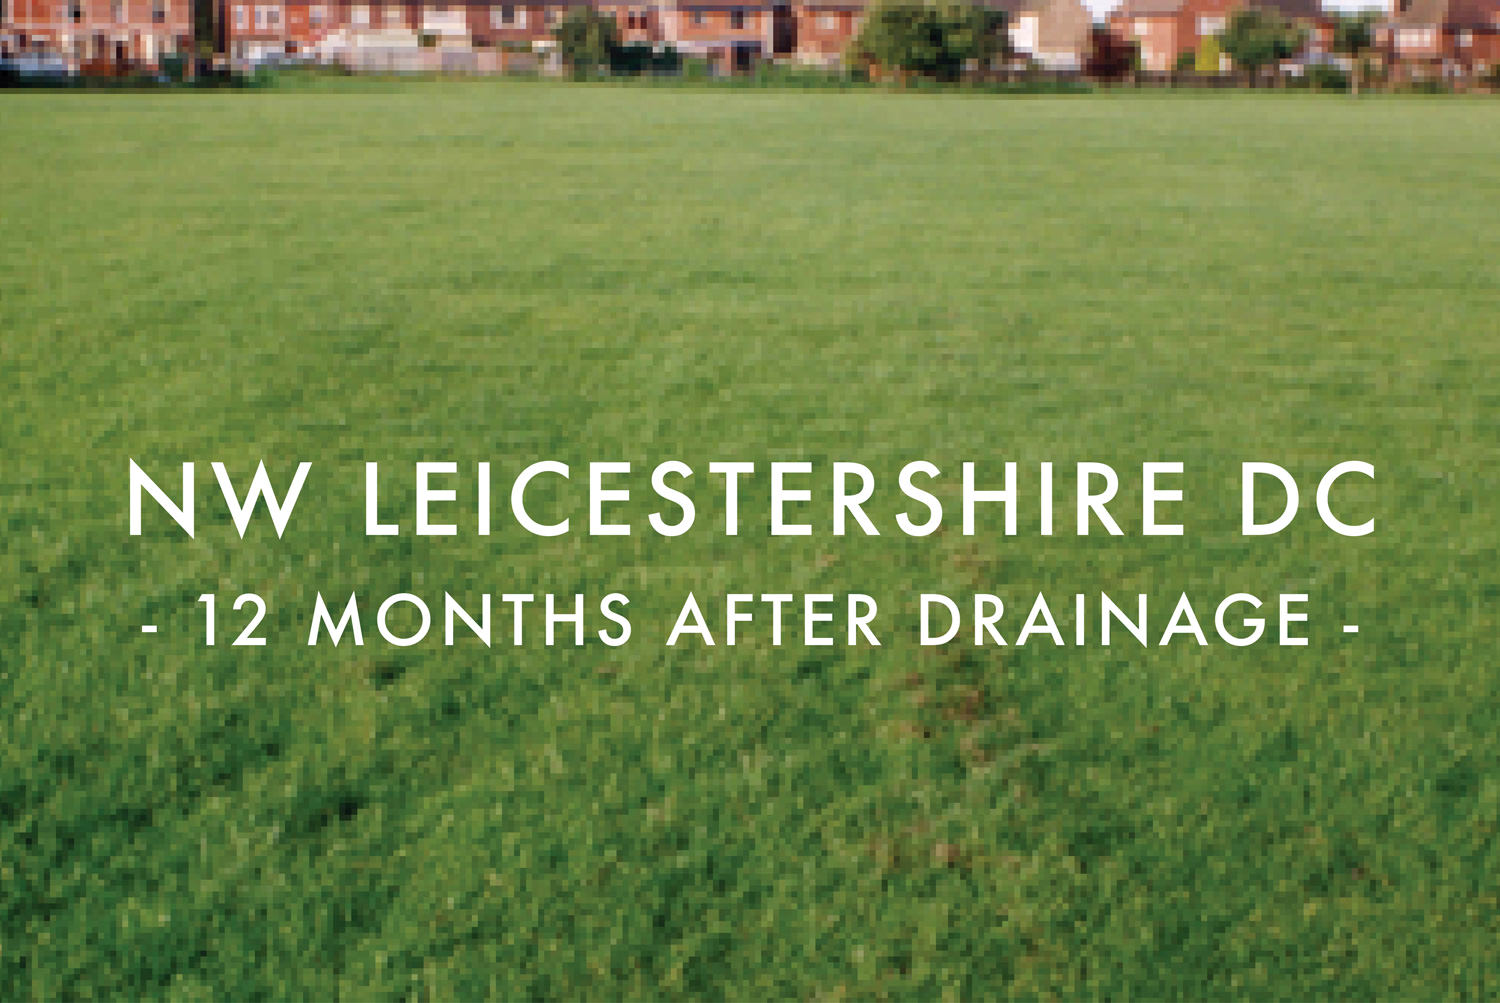 NW Leicestershire FC - After Drainage